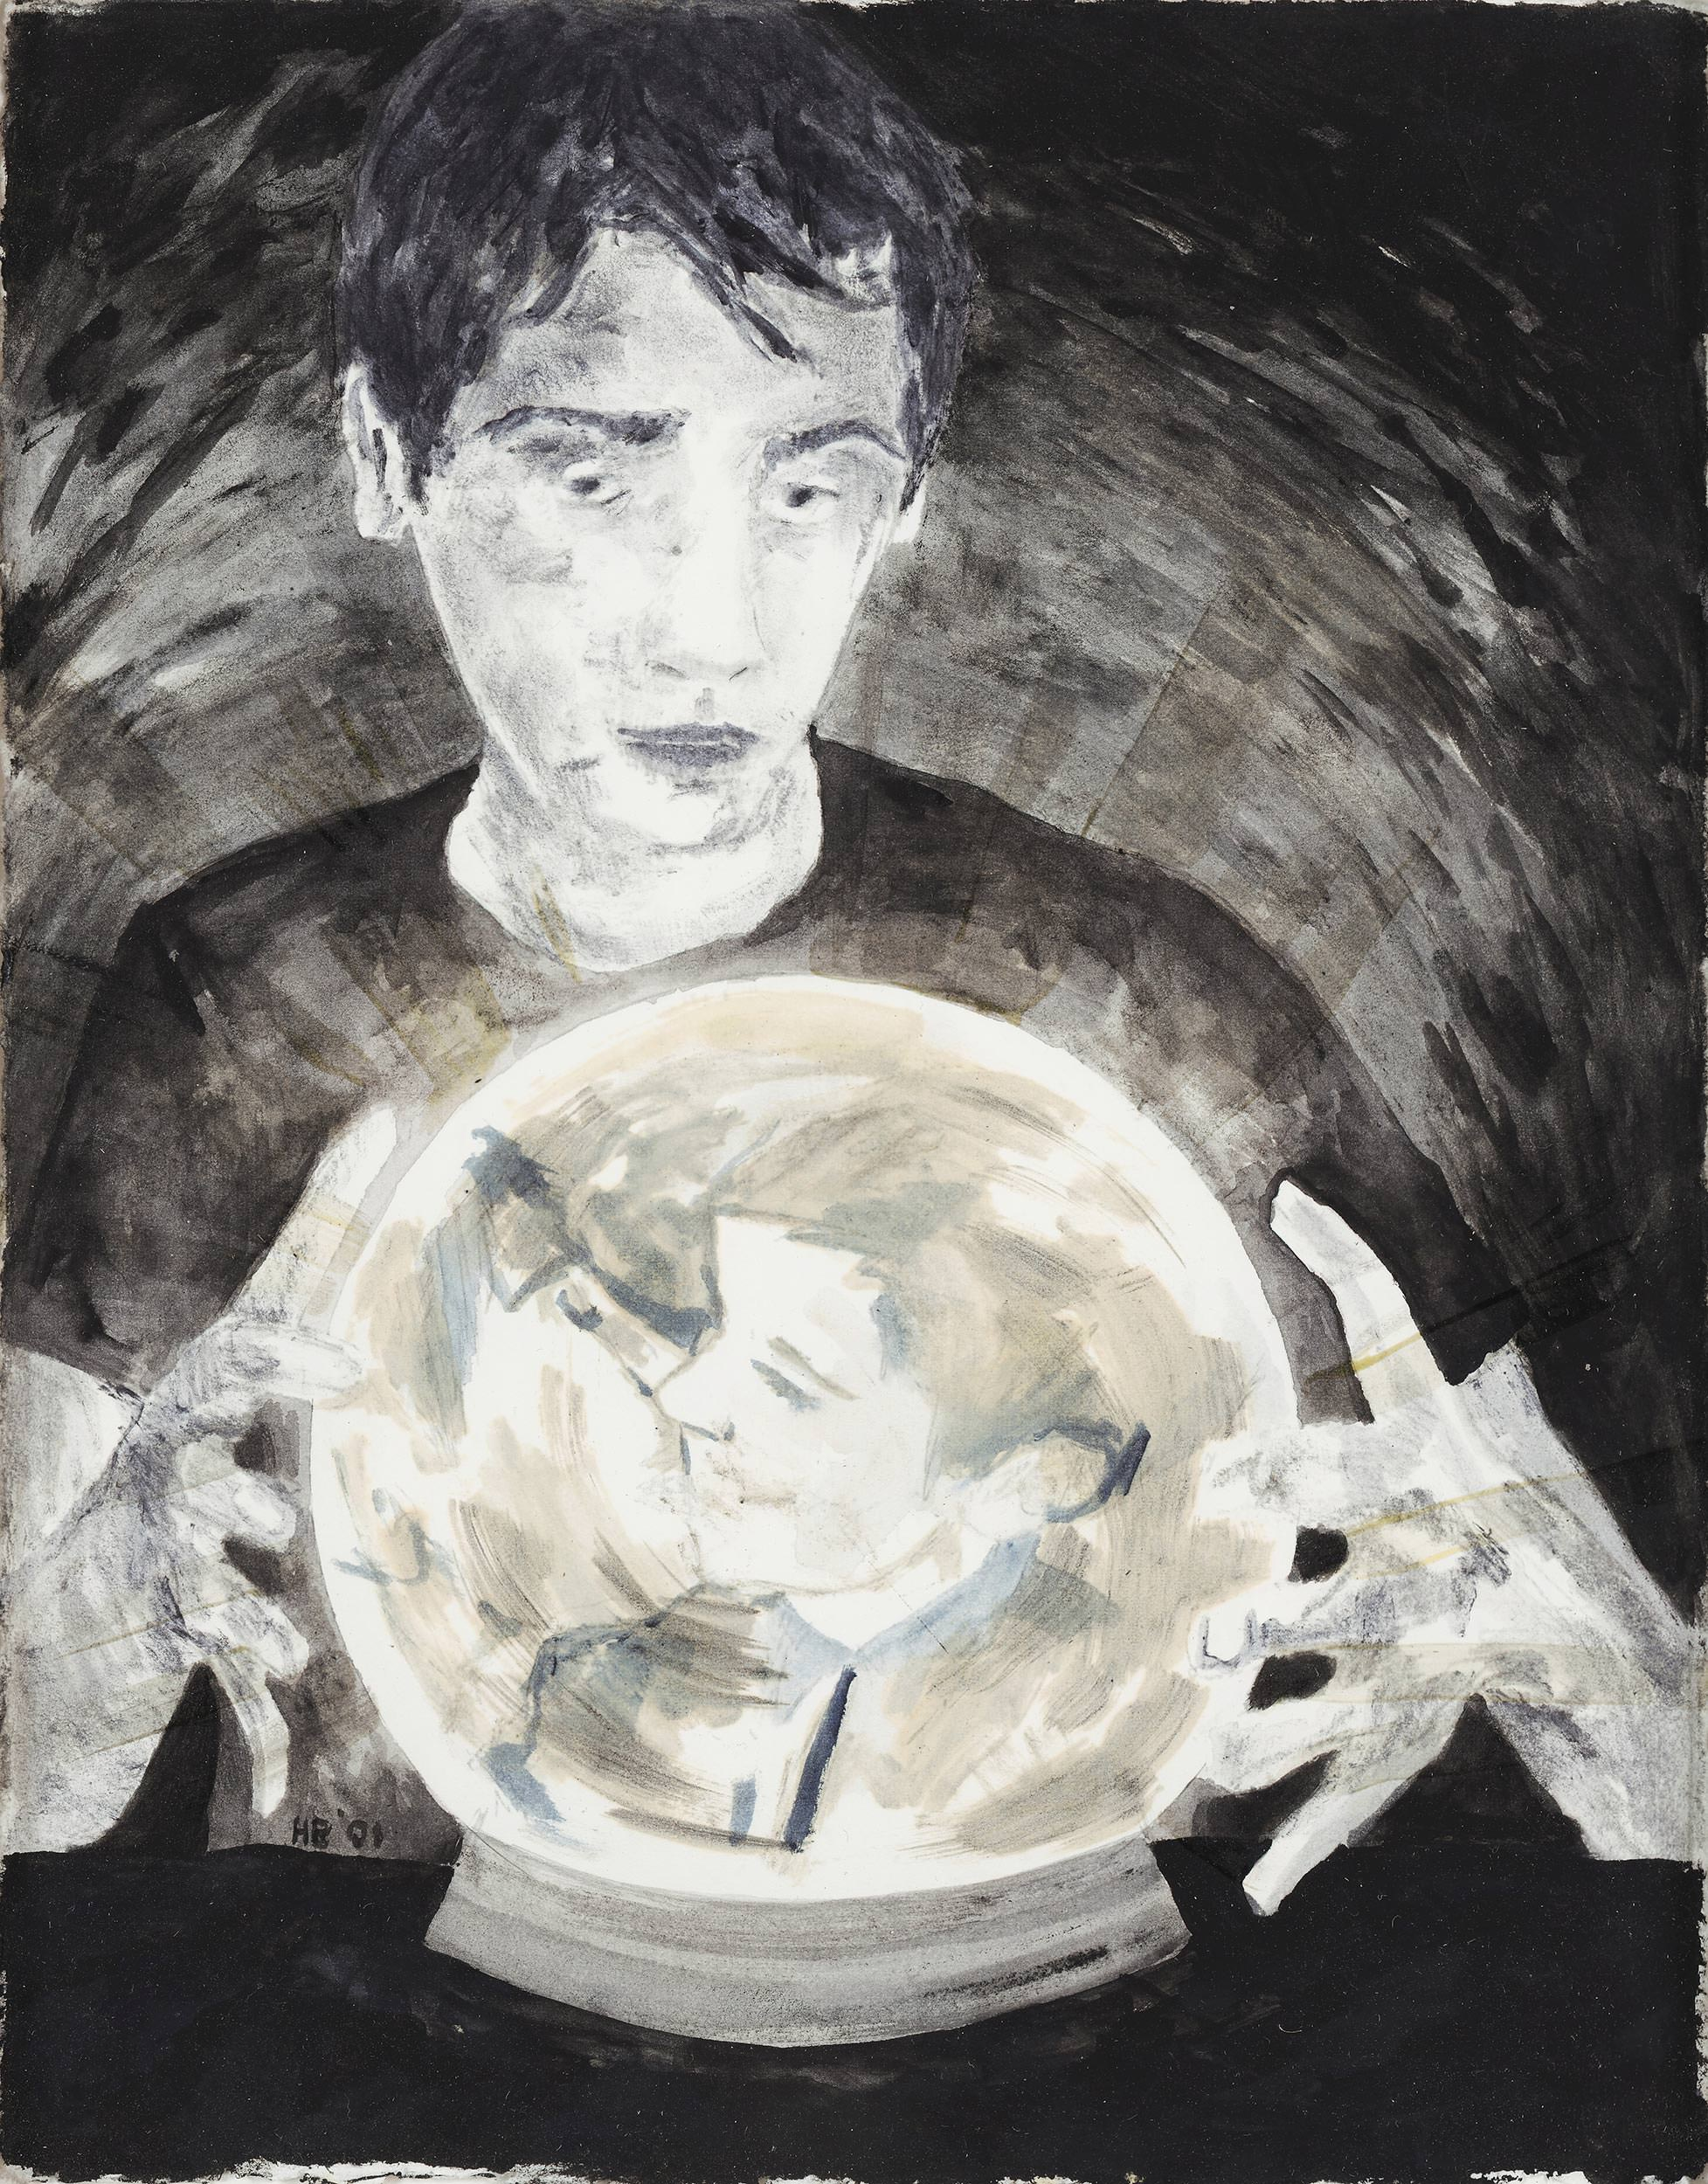 Image of Hernan Bas, Untitled (Crystal Ball), 2001